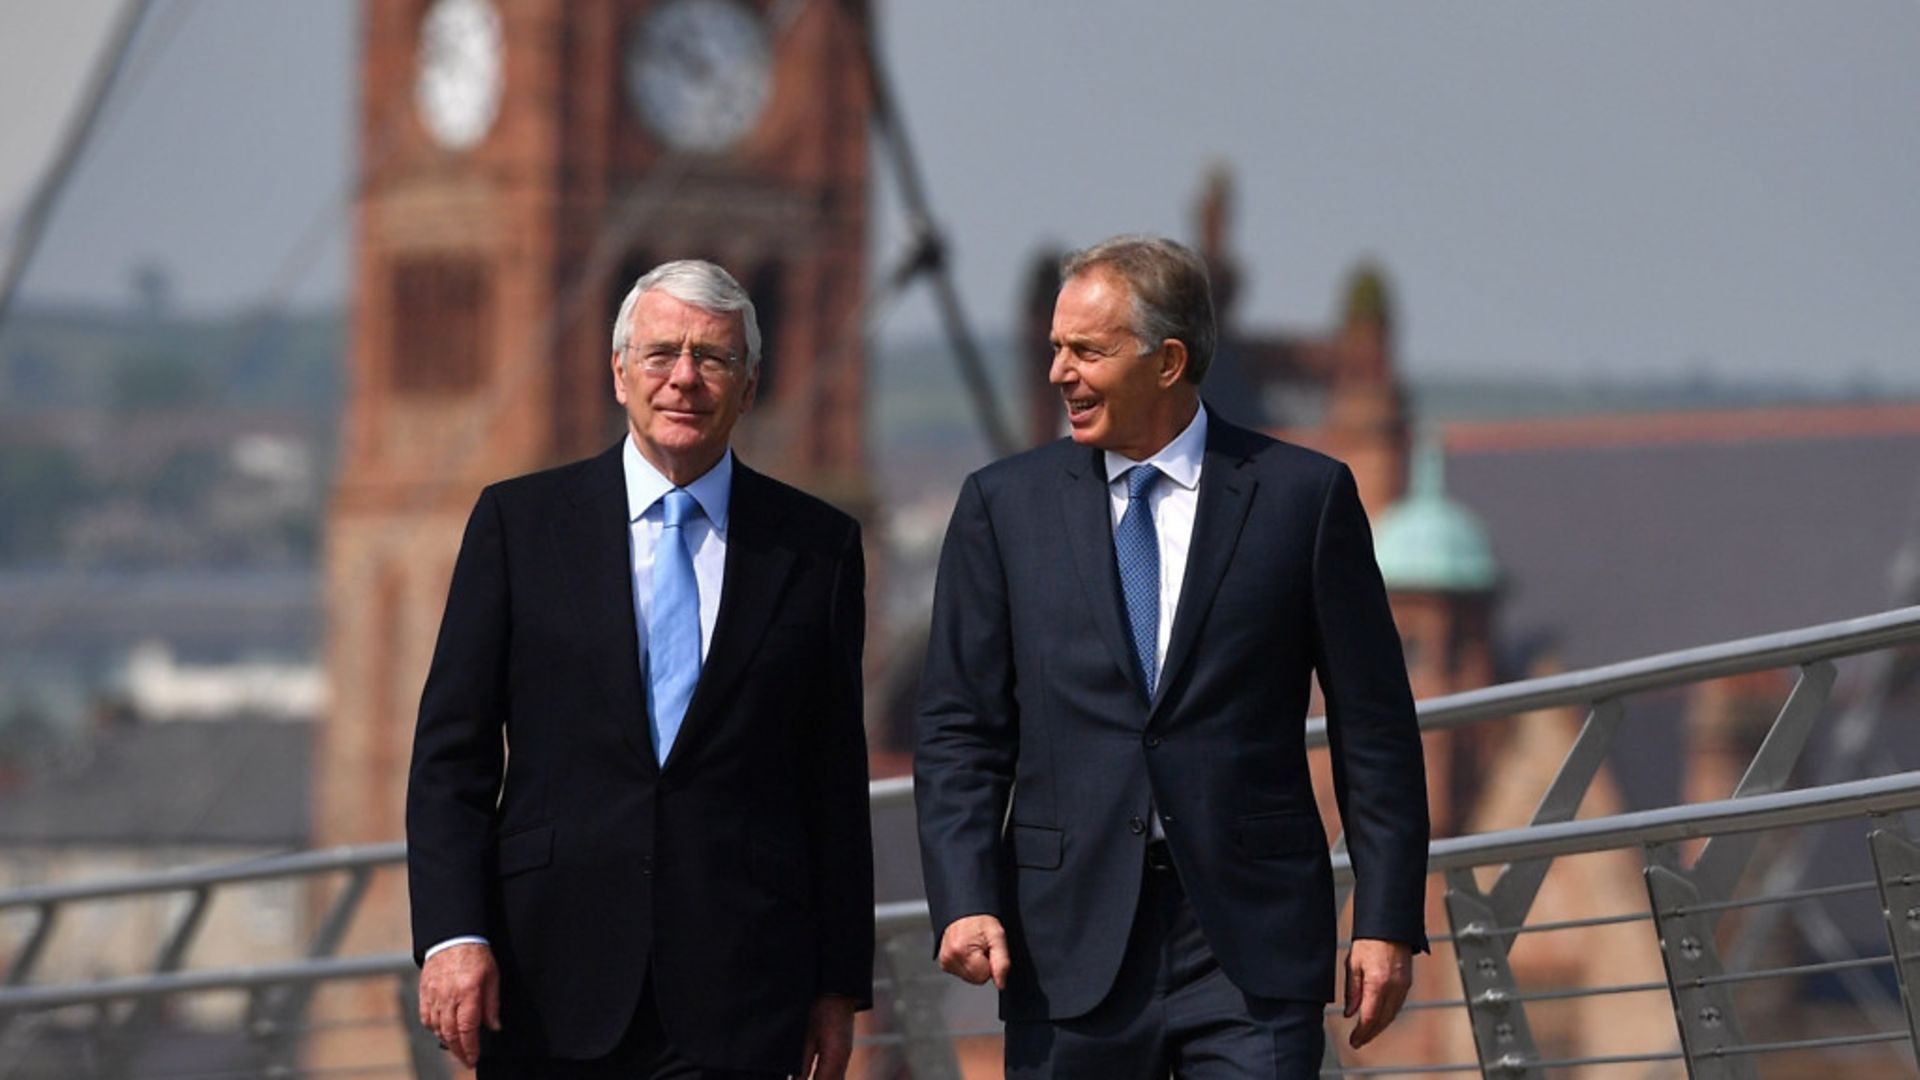 Former prime ministers Sir John Major (left) and Tony Blair walk across the Peace Bridge in Londonderry - Credit: PA Archive/PA Images